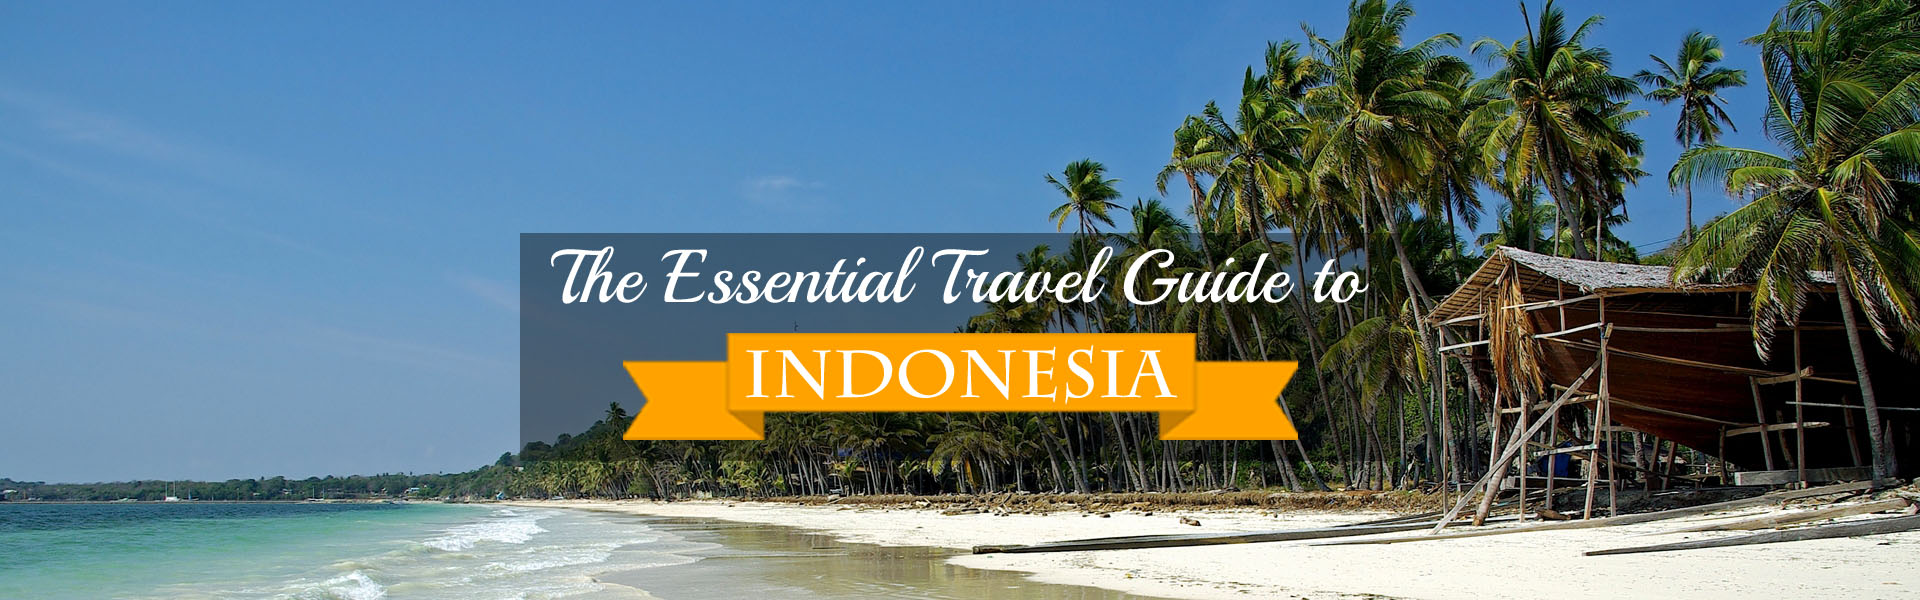 The Essential Travel Guide to Indonesia